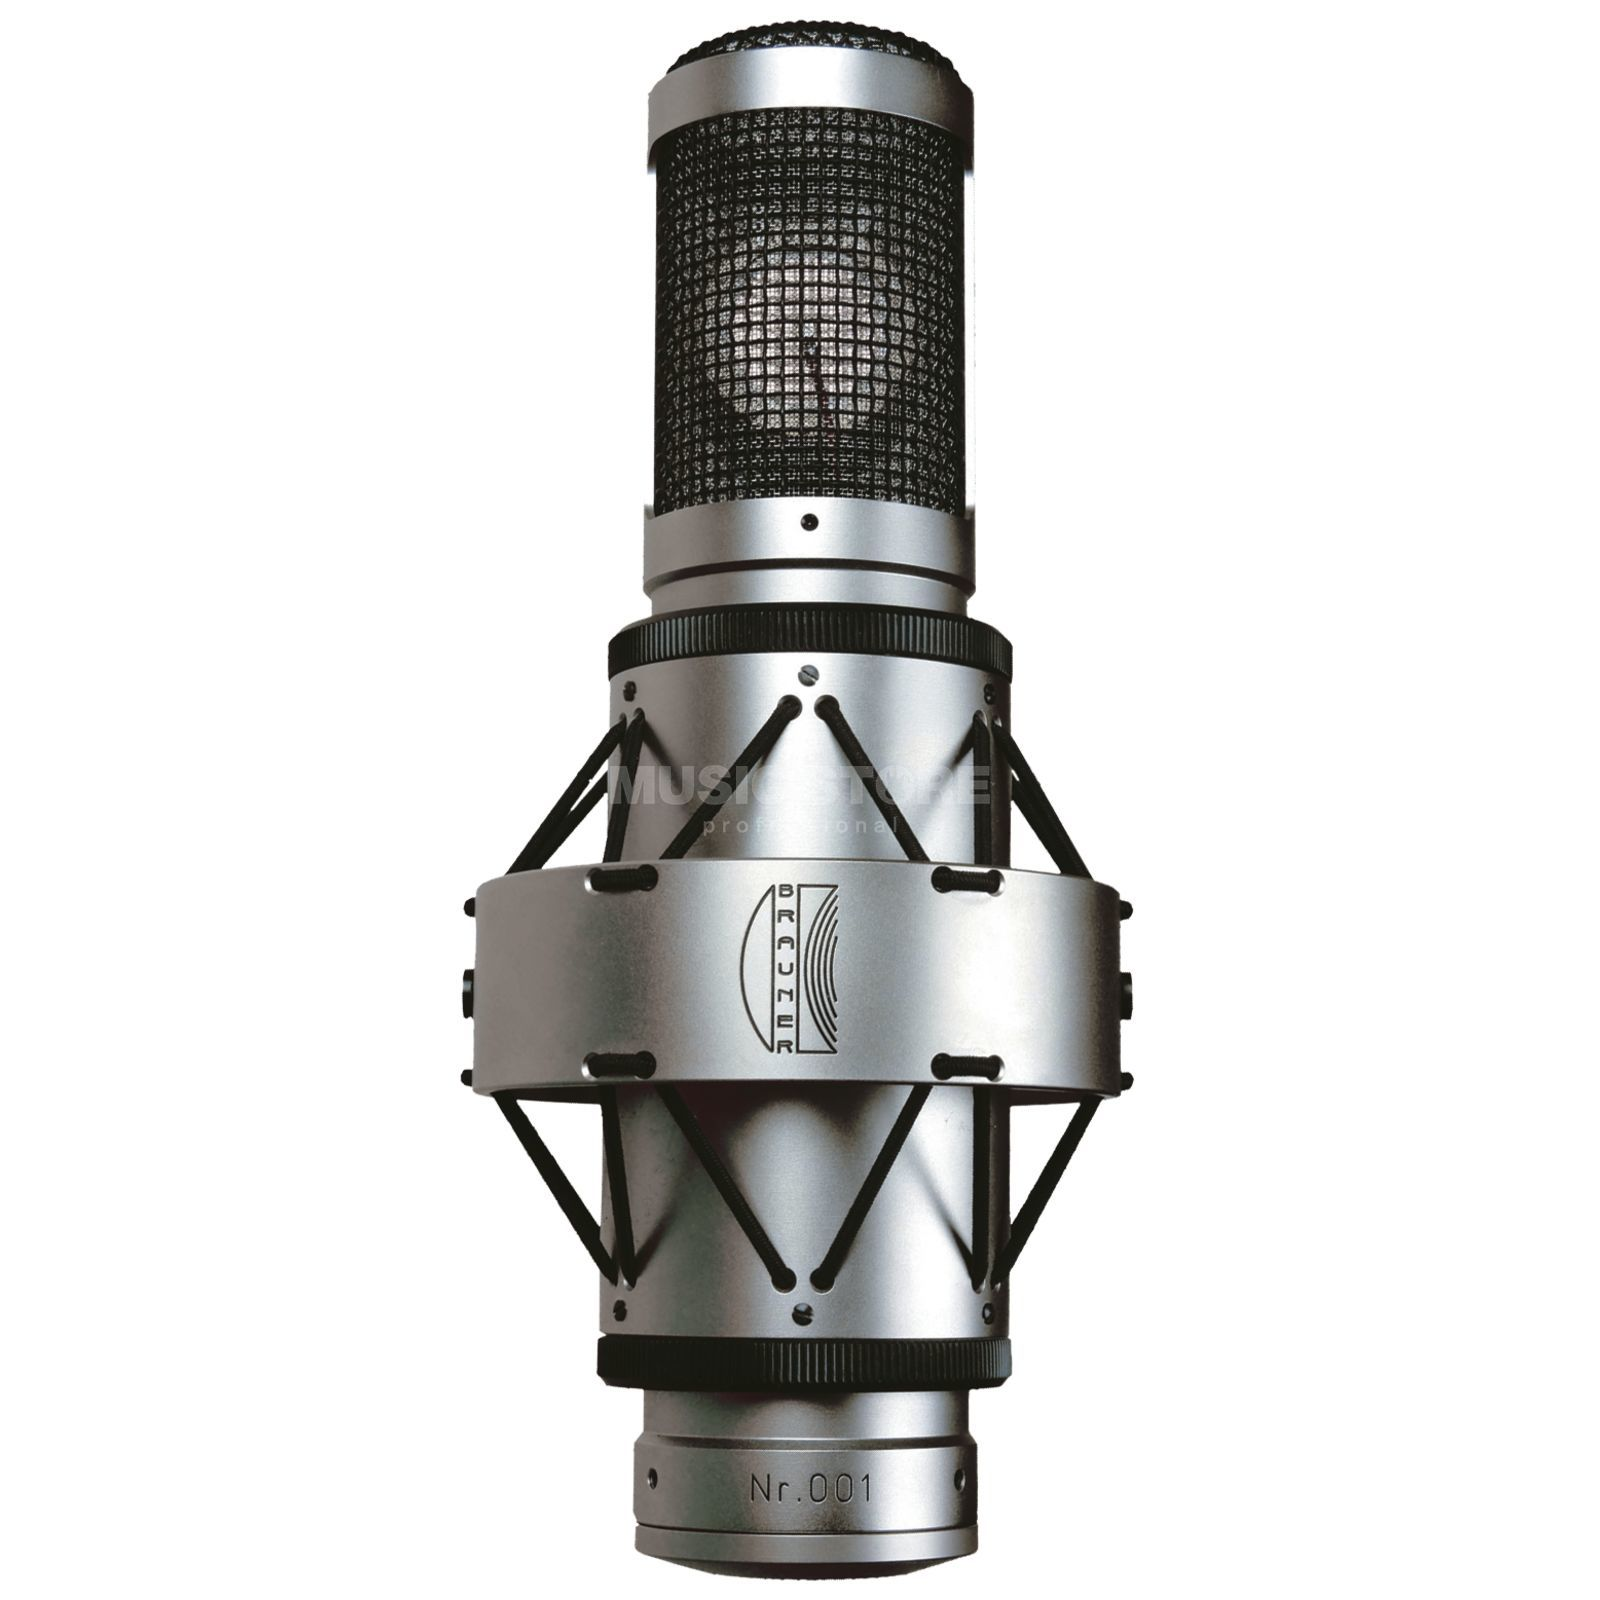 Brauner VMA Tube Microphone incl.  Shock Mount and Tube-VovoxCable Produktbillede